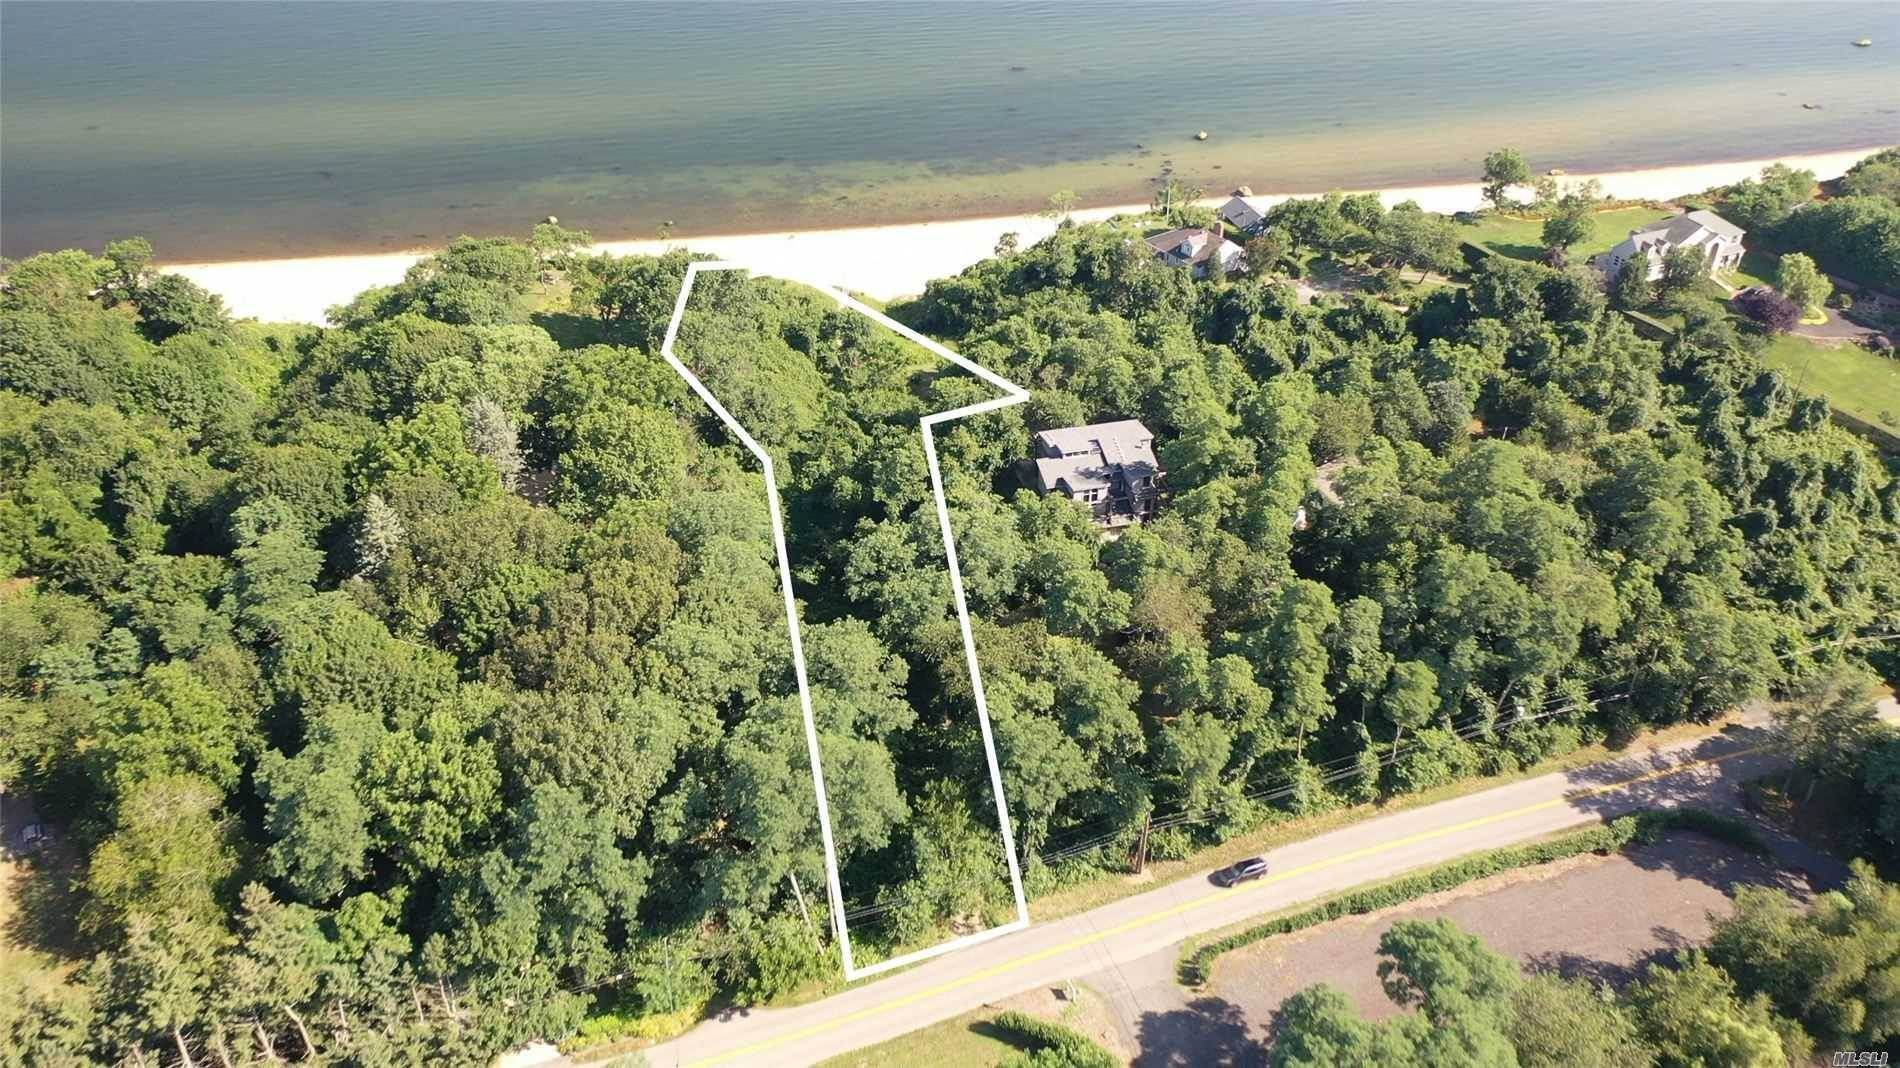 Land for Sale at Soundfront Building Lot In Riverhead 474 Sound Shore Road, Northville, NY 11901